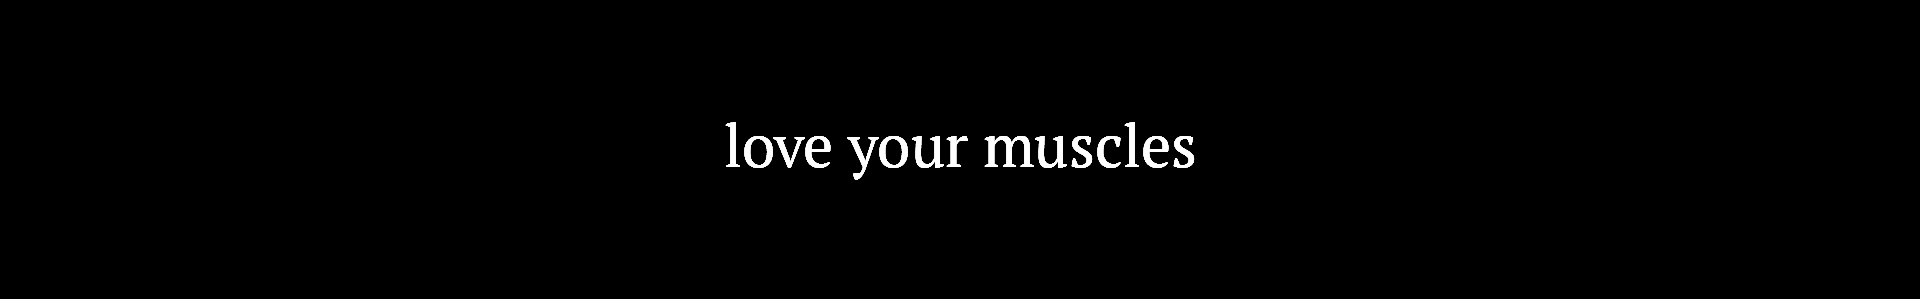 Titel_LoveYourMuscles